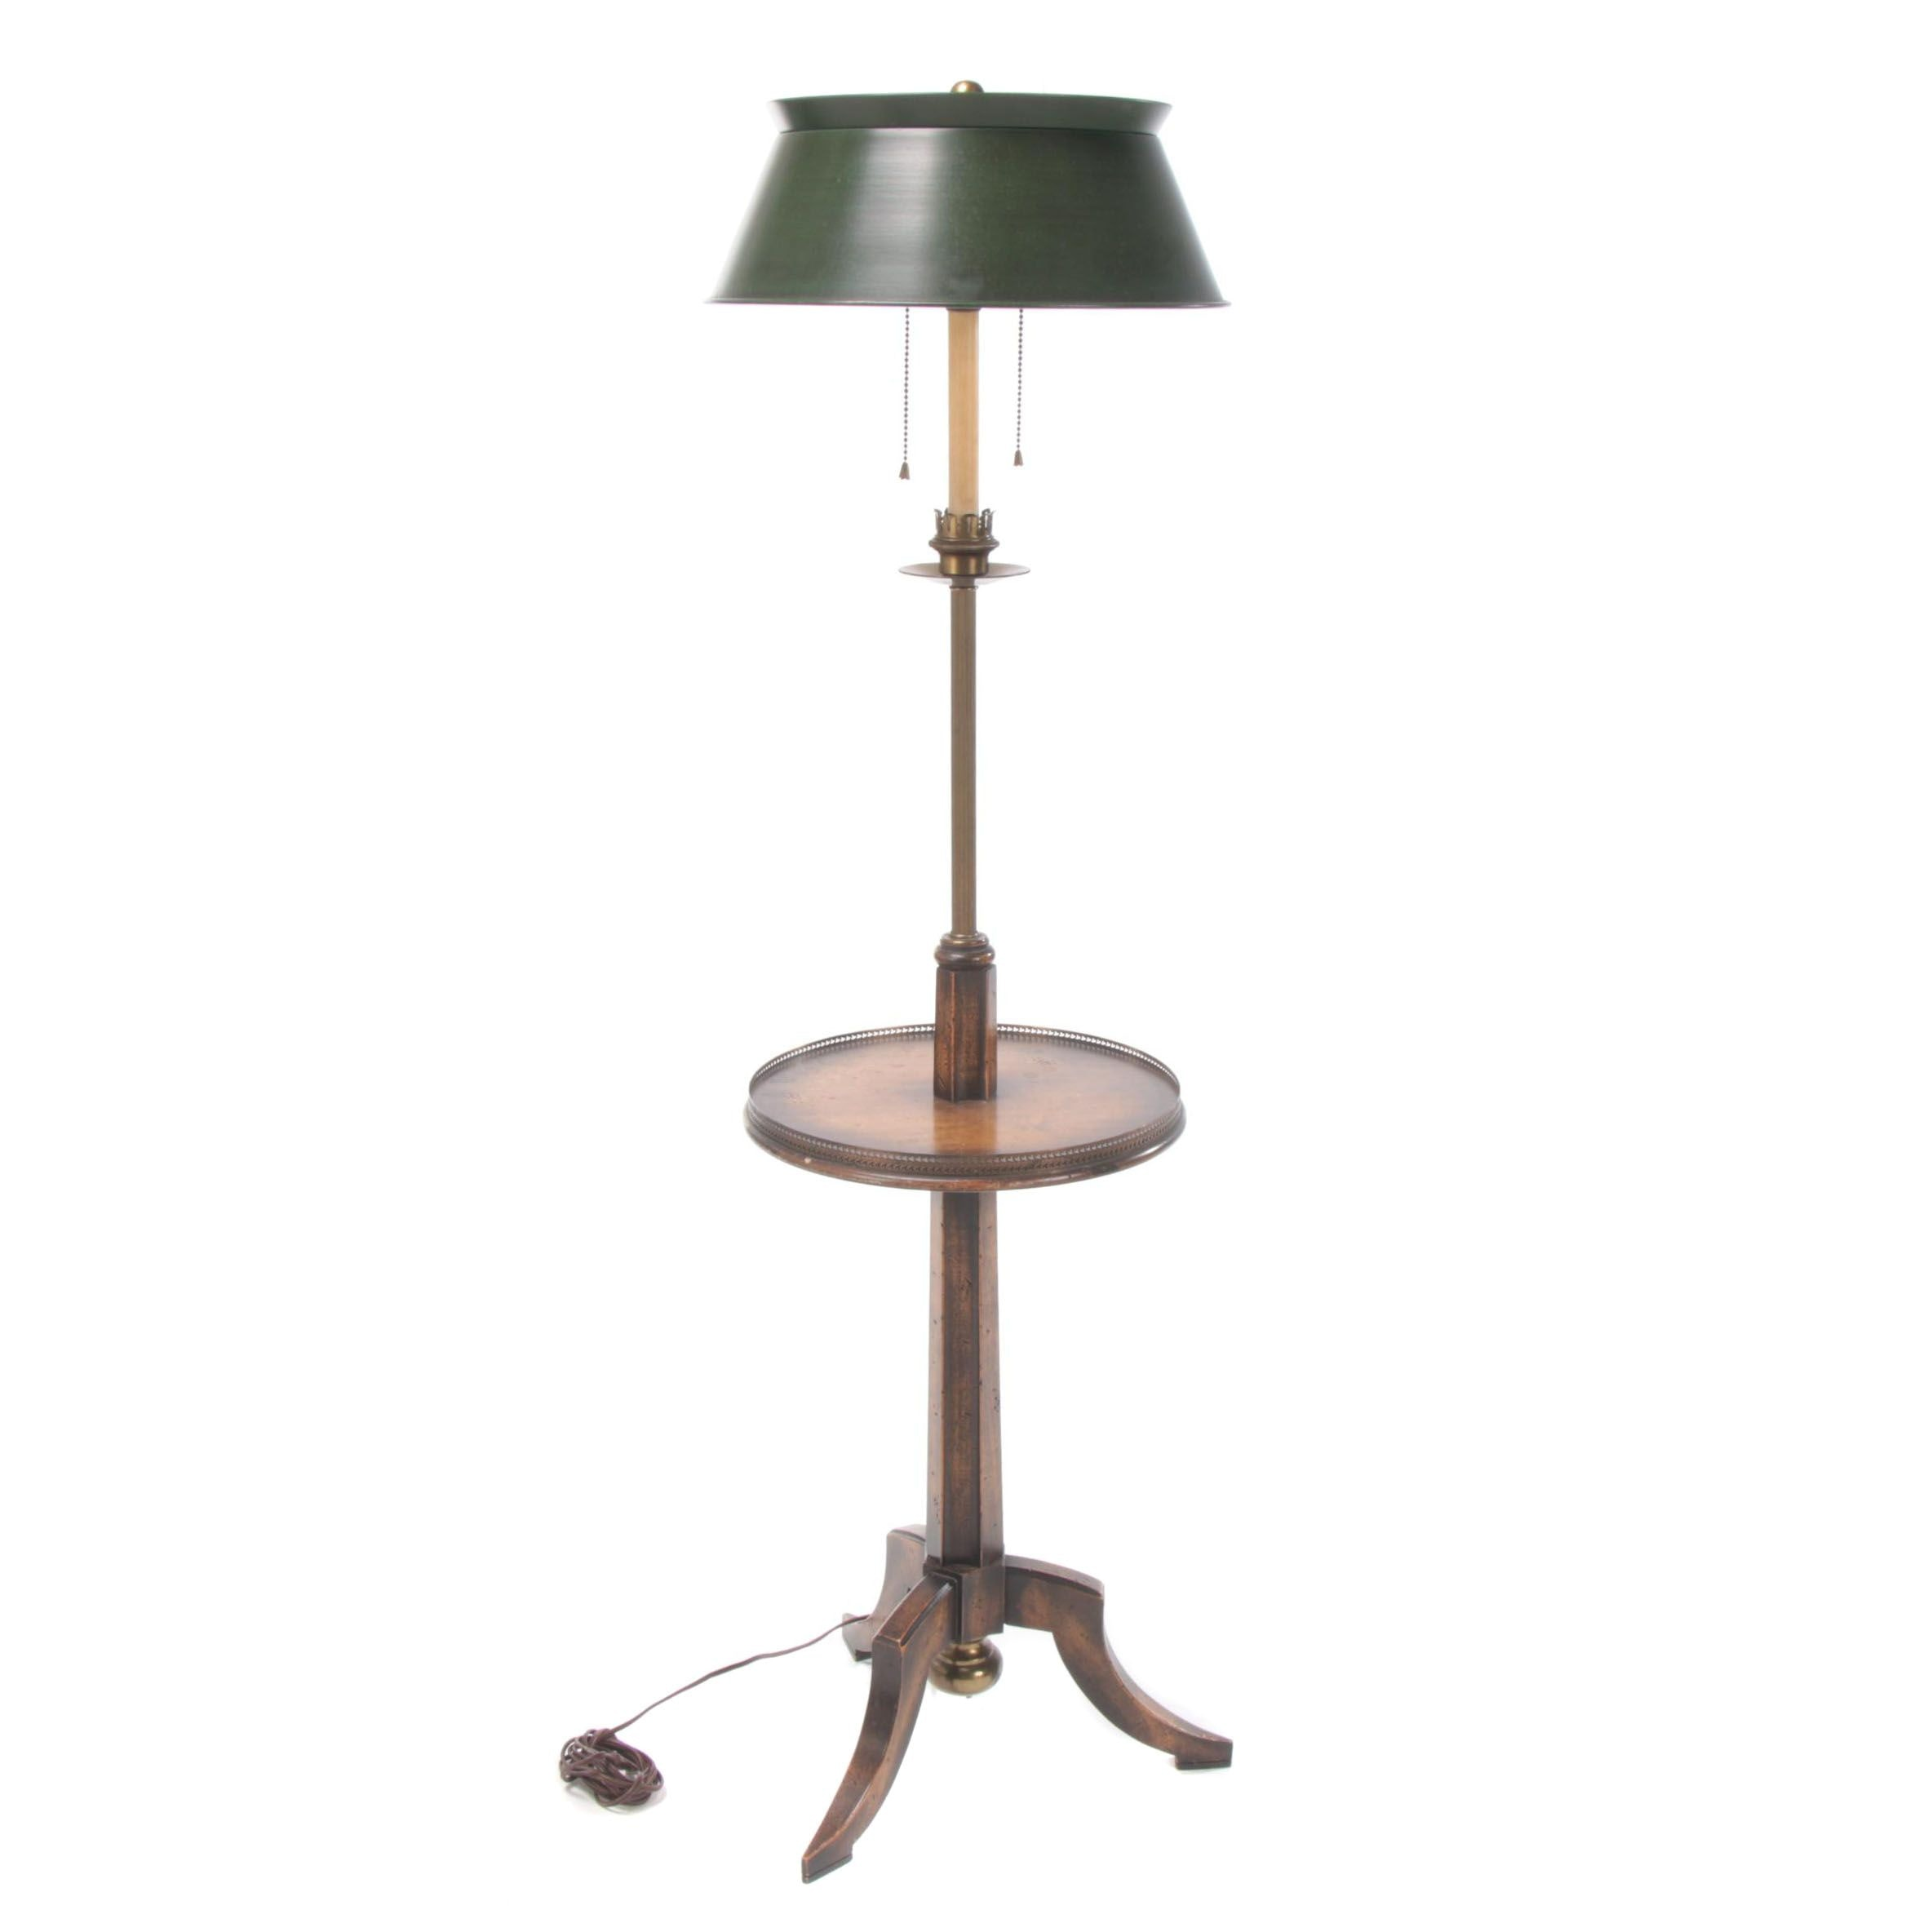 Frederick Cooper, Tripod Floor Lamp with Tabletop and Tole Shade, 20th Century